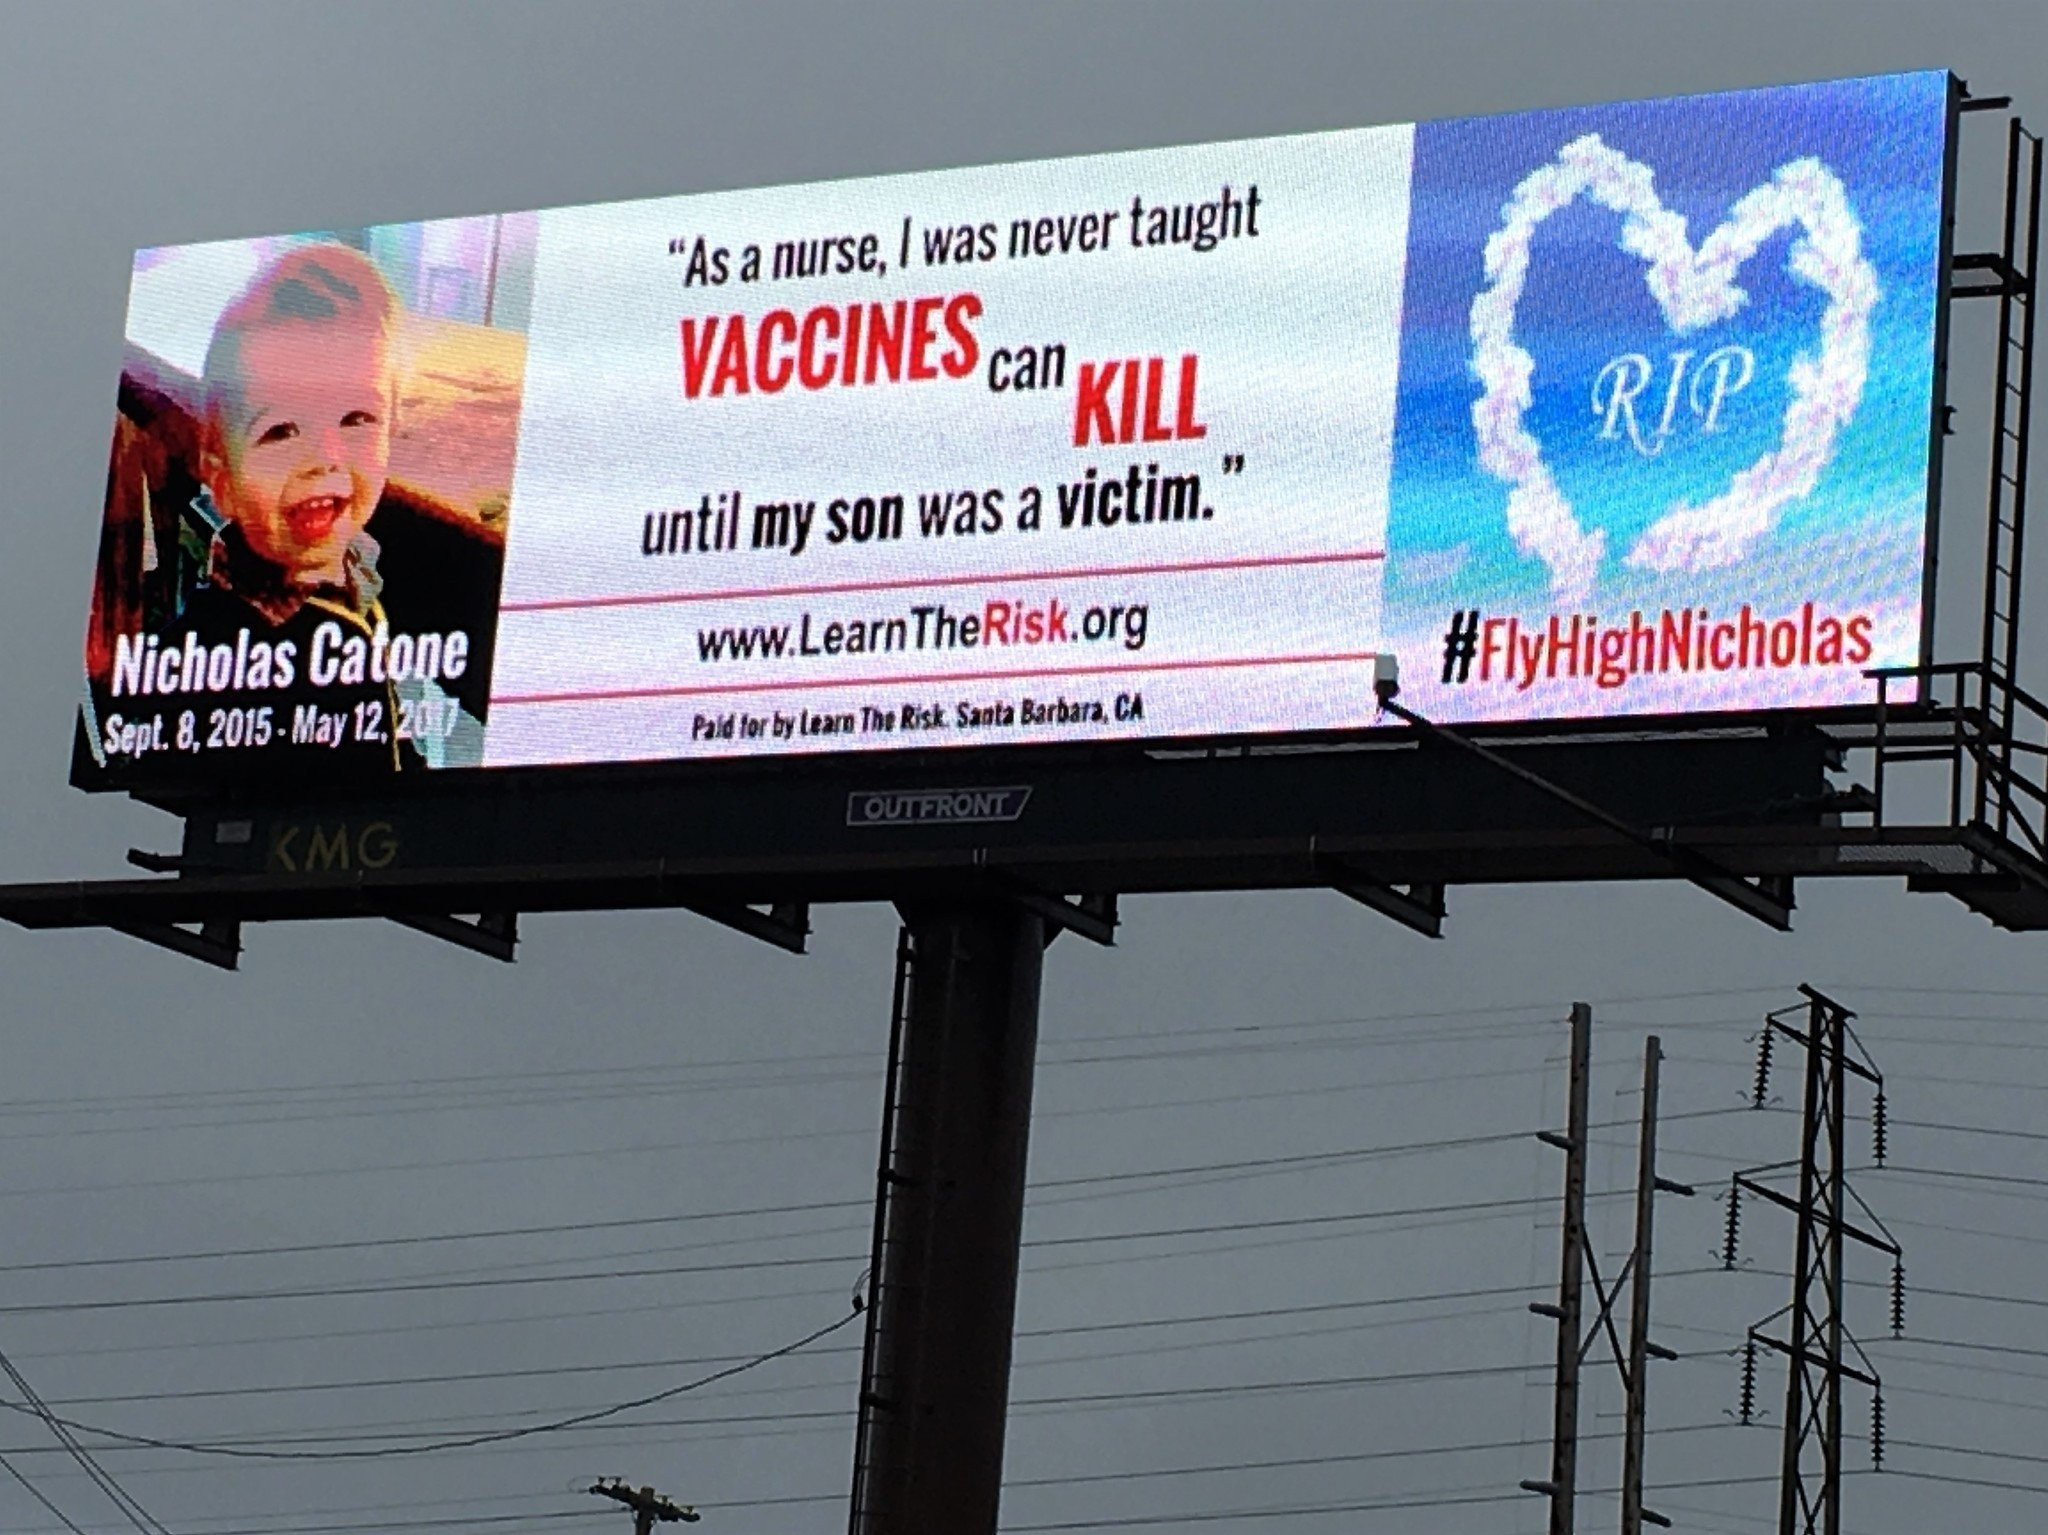 Anti-vaccine  billboard in Syracuse featuring former fighter's dead son sparks criticism - syracuse.com